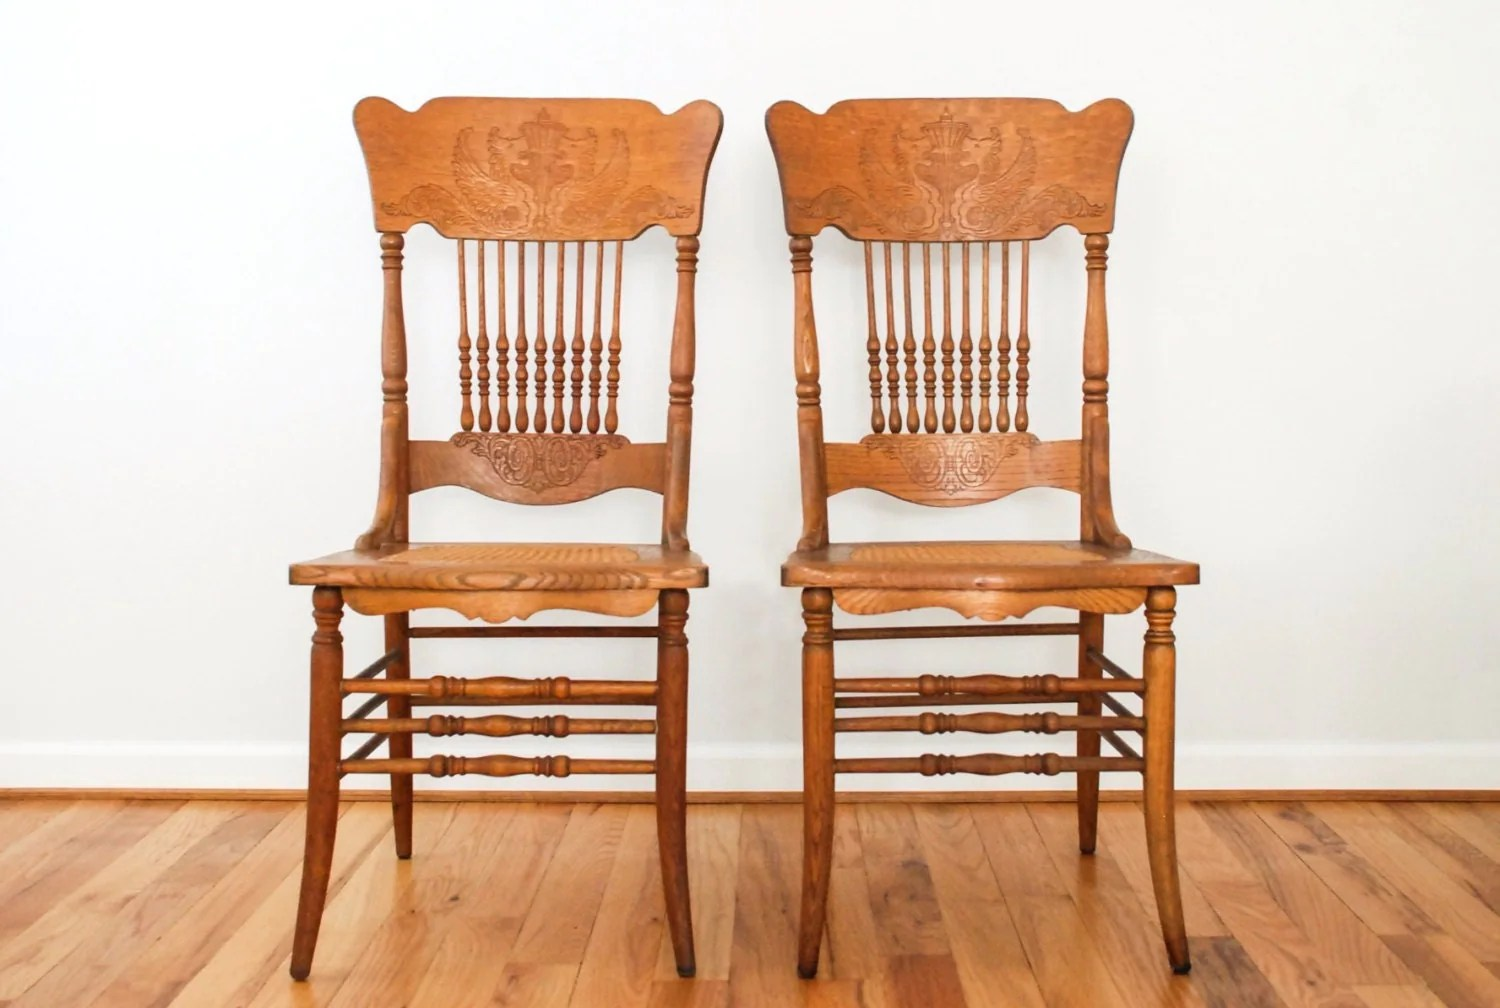 vintage wooden chairs stool chair perth antique wood dining cane